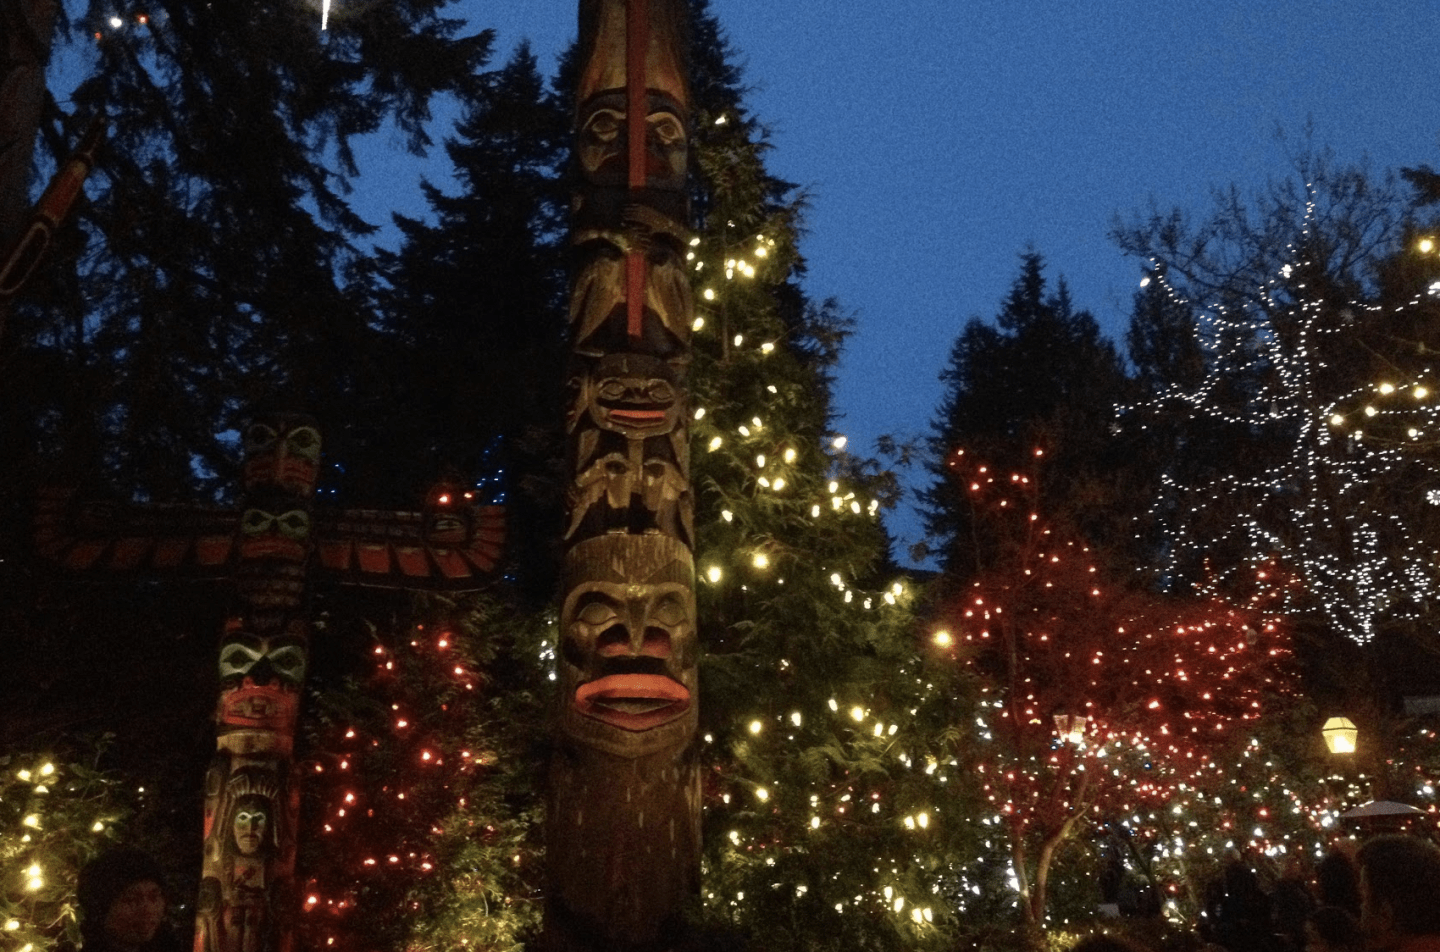 Canyon lights at Capilano Suspension Bridge, Vancouver